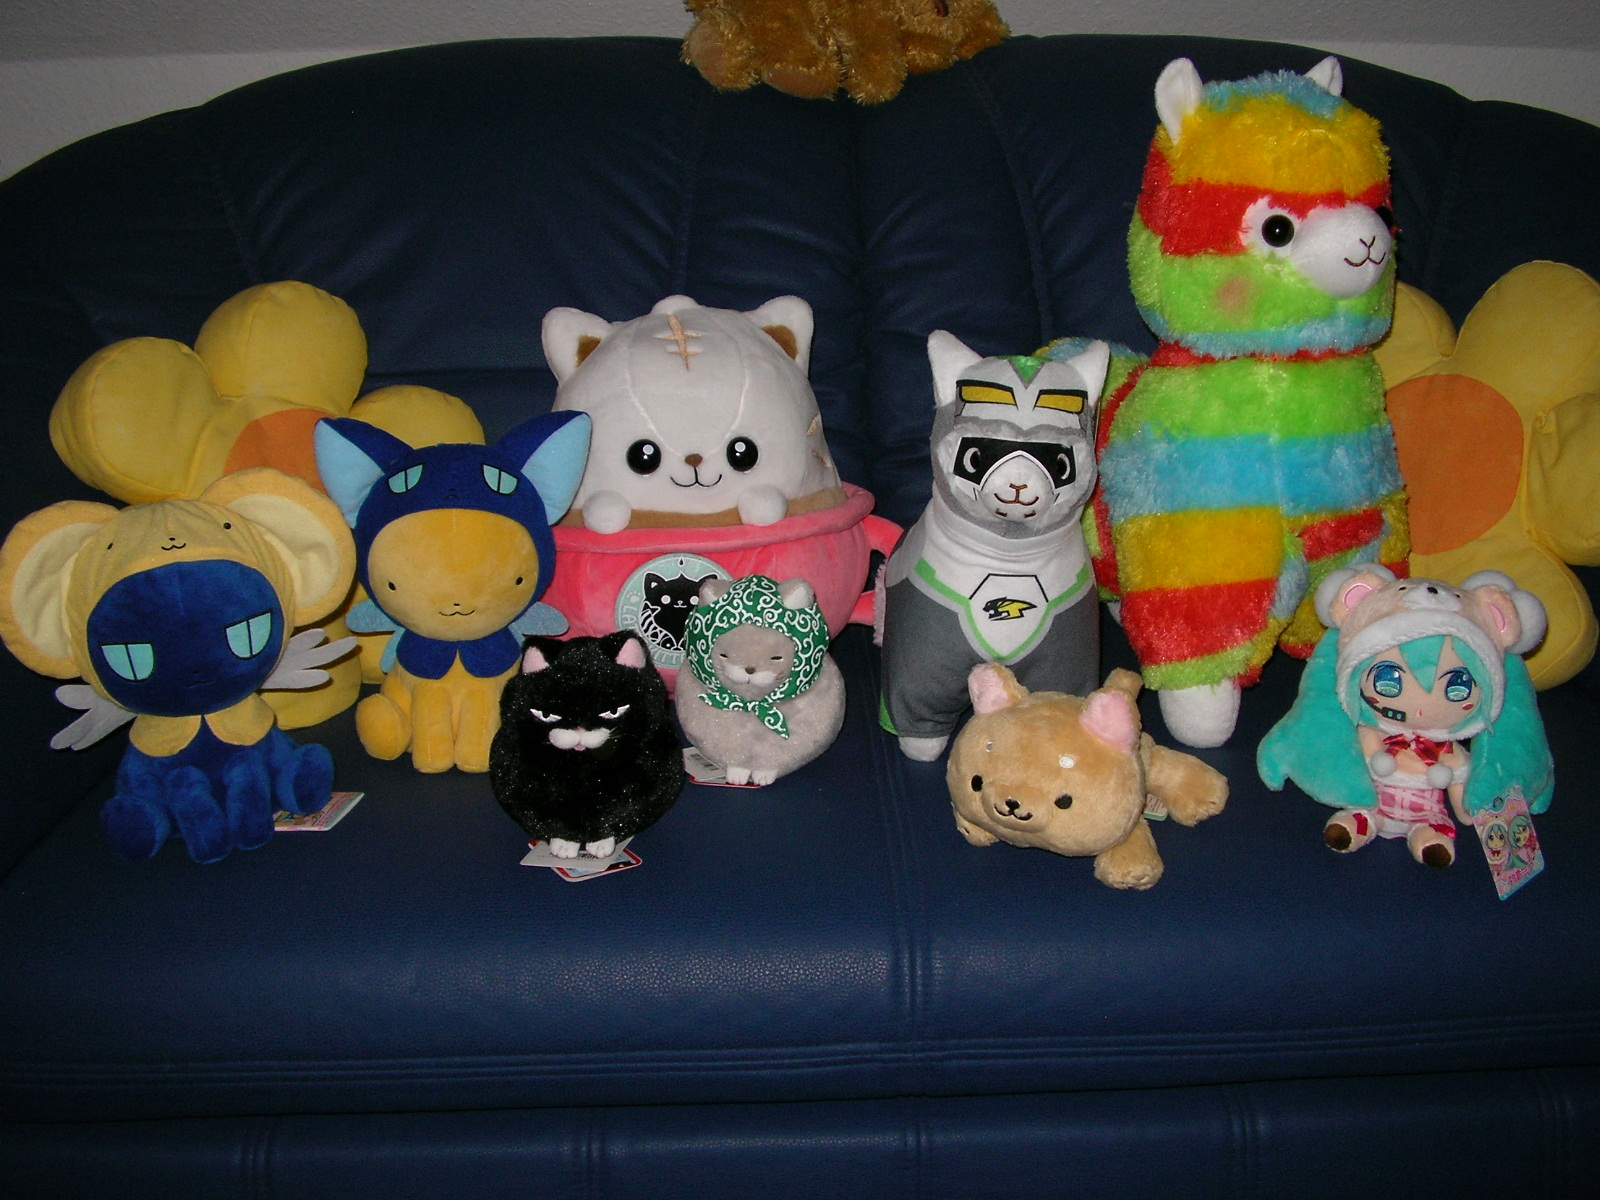 vocaloid clamp hatsune_miku banpresto card_captor_sakura kero-chan taito crypton_future_media super_dx_plush tiger_&_bunny wild_tiger spinel plush_mascot yes_anime alpacasso alpacasso_plushies kagami_leo amuse_co._ltd.